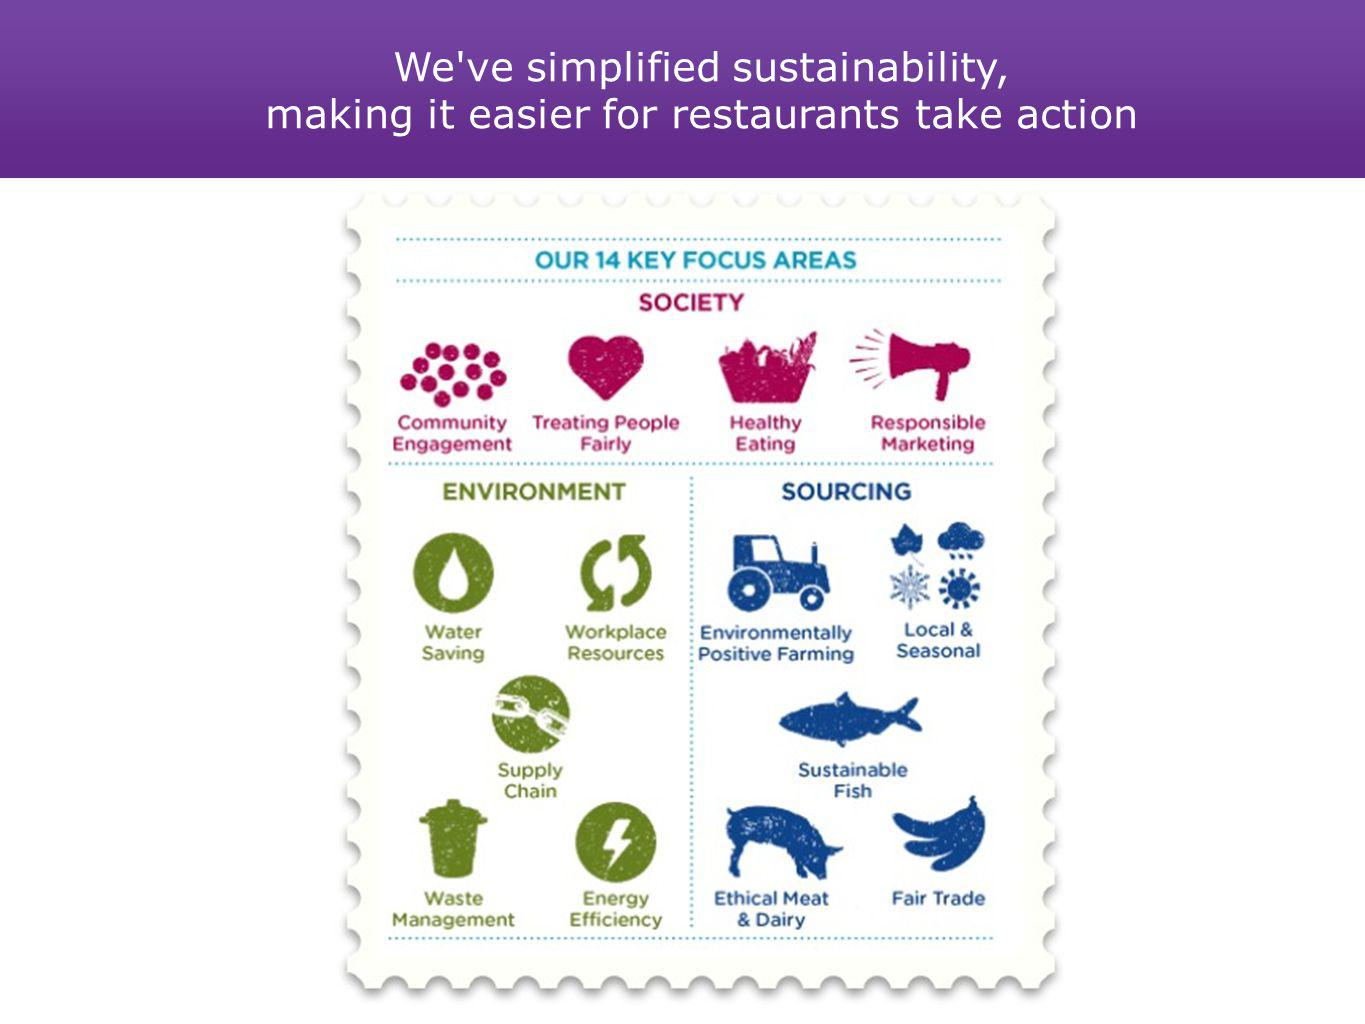 We've simplified sustainability, making it easier for restaurants take action